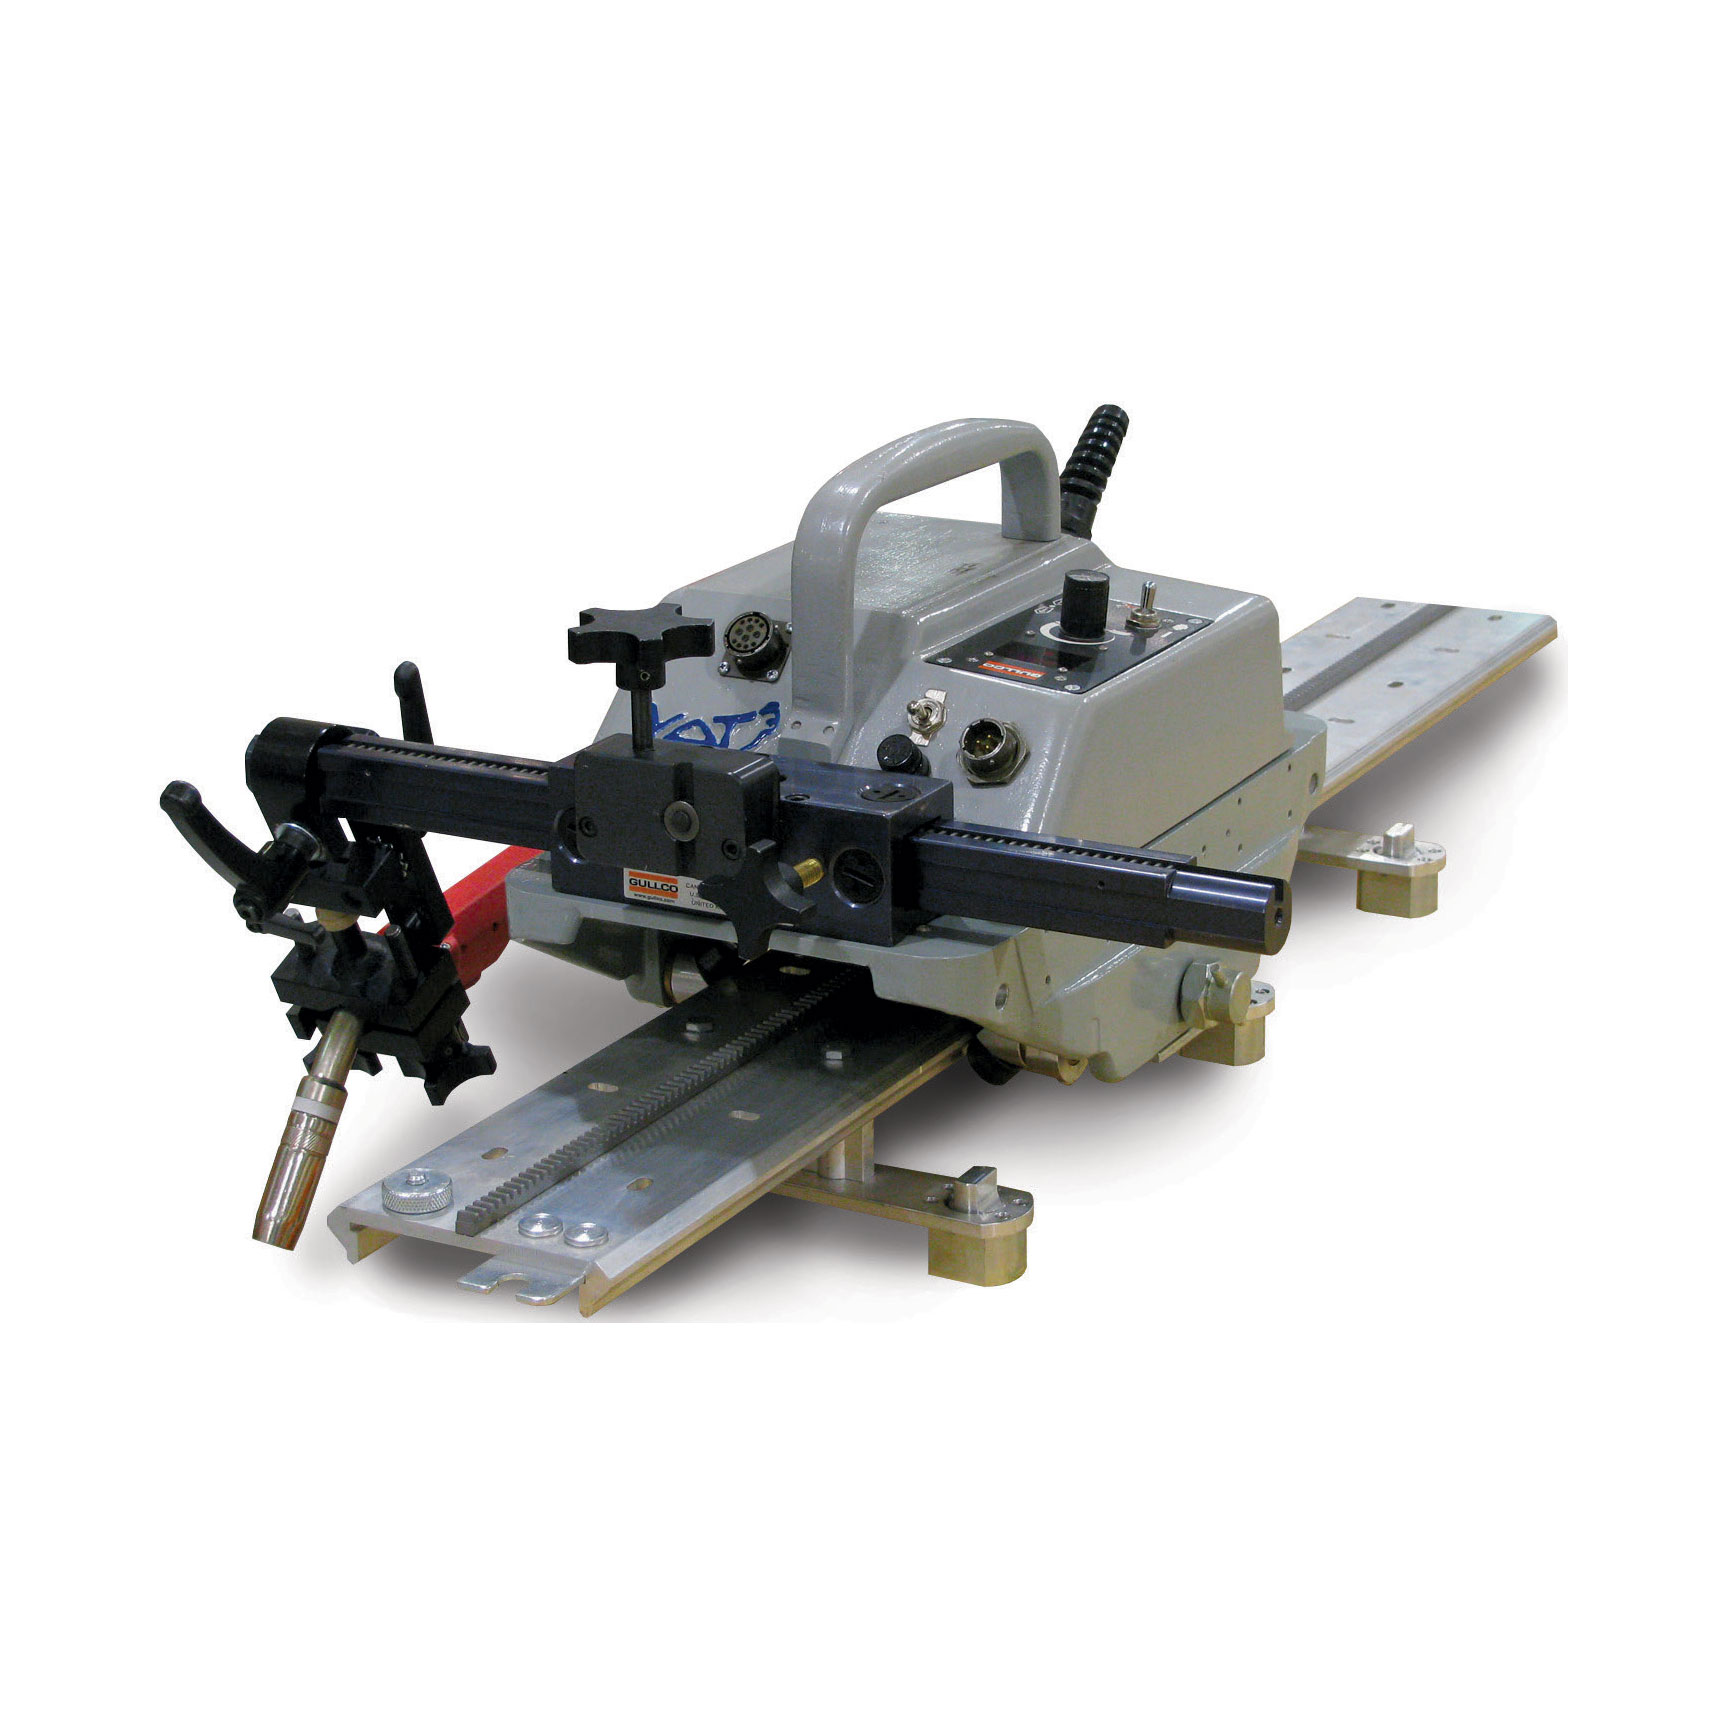 KAT Carriage for RIGID track